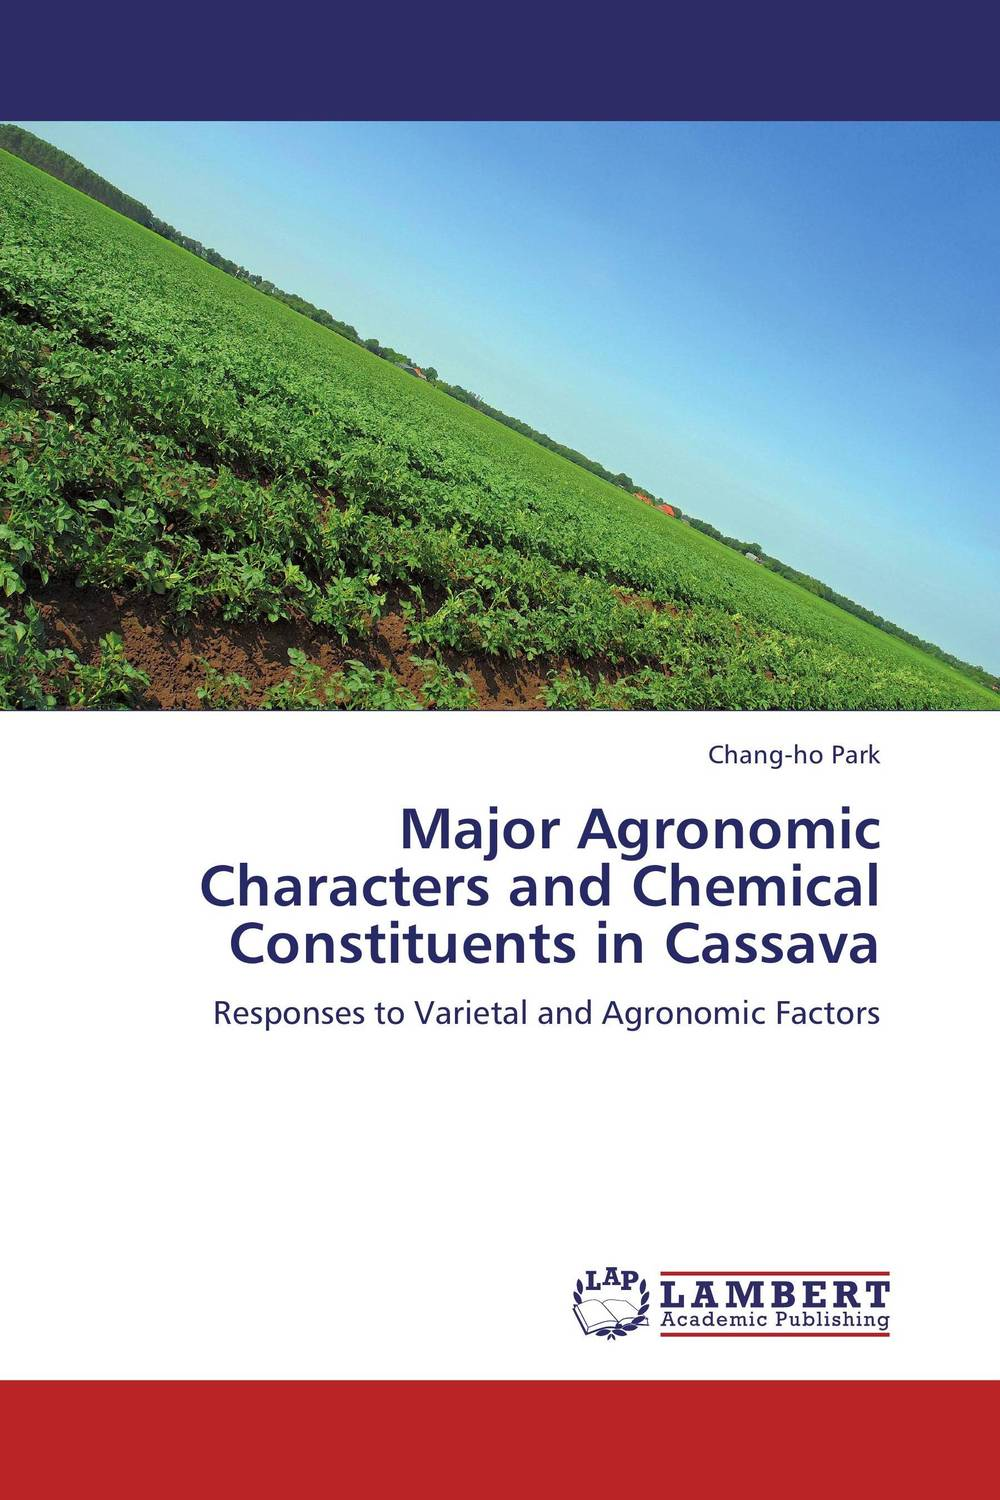 Major Agronomic Characters and Chemical Constituents in Cassava wheat breeding for rust resistance